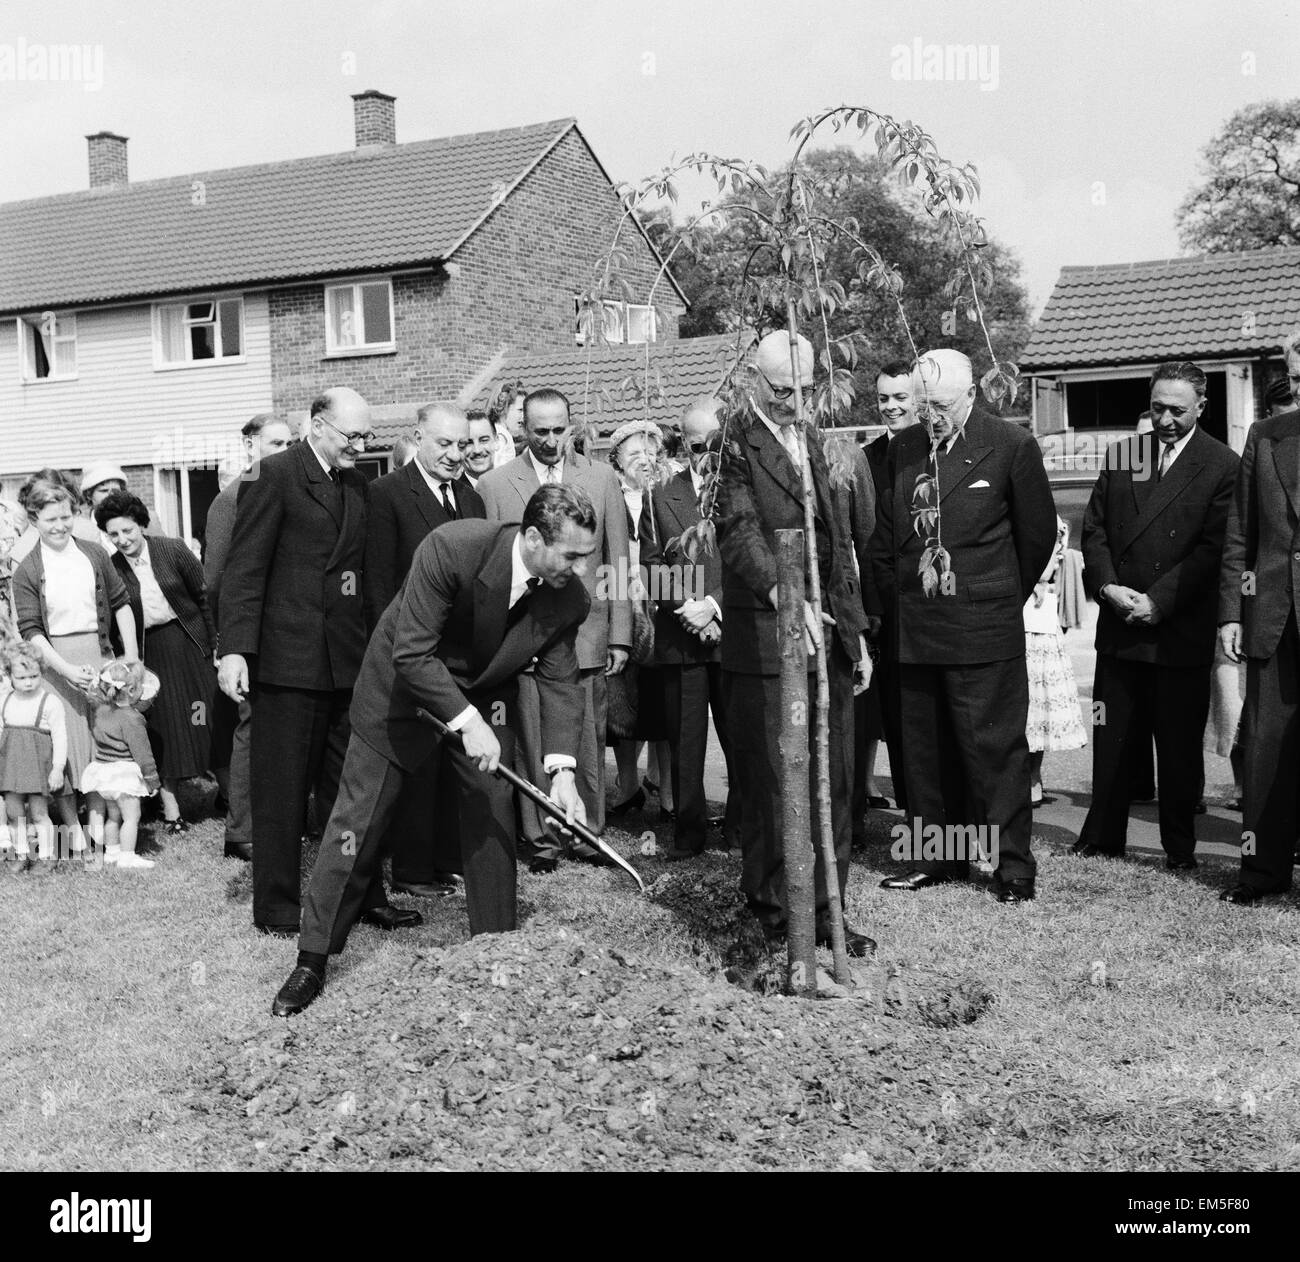 Mohammad-Reza Shah Pahlavi, the Shah of Iran plants a tree watched by residents of Makepieace Road in the new town Stock Photo